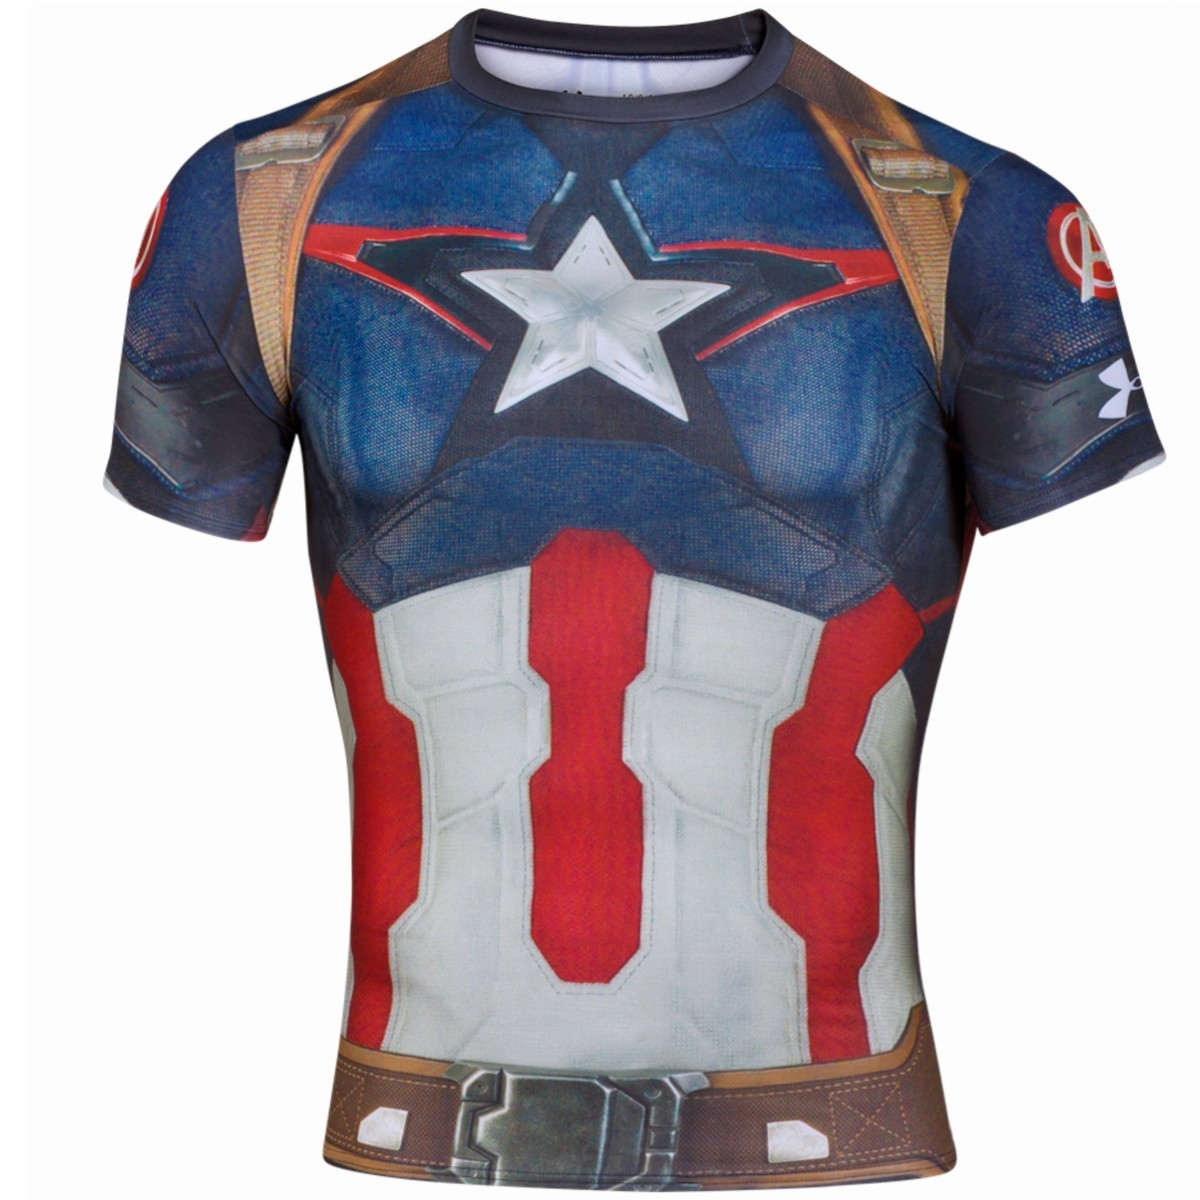 Under Armour Captain America Compression Shirt 1244399-402 2XL NWT Crossfit